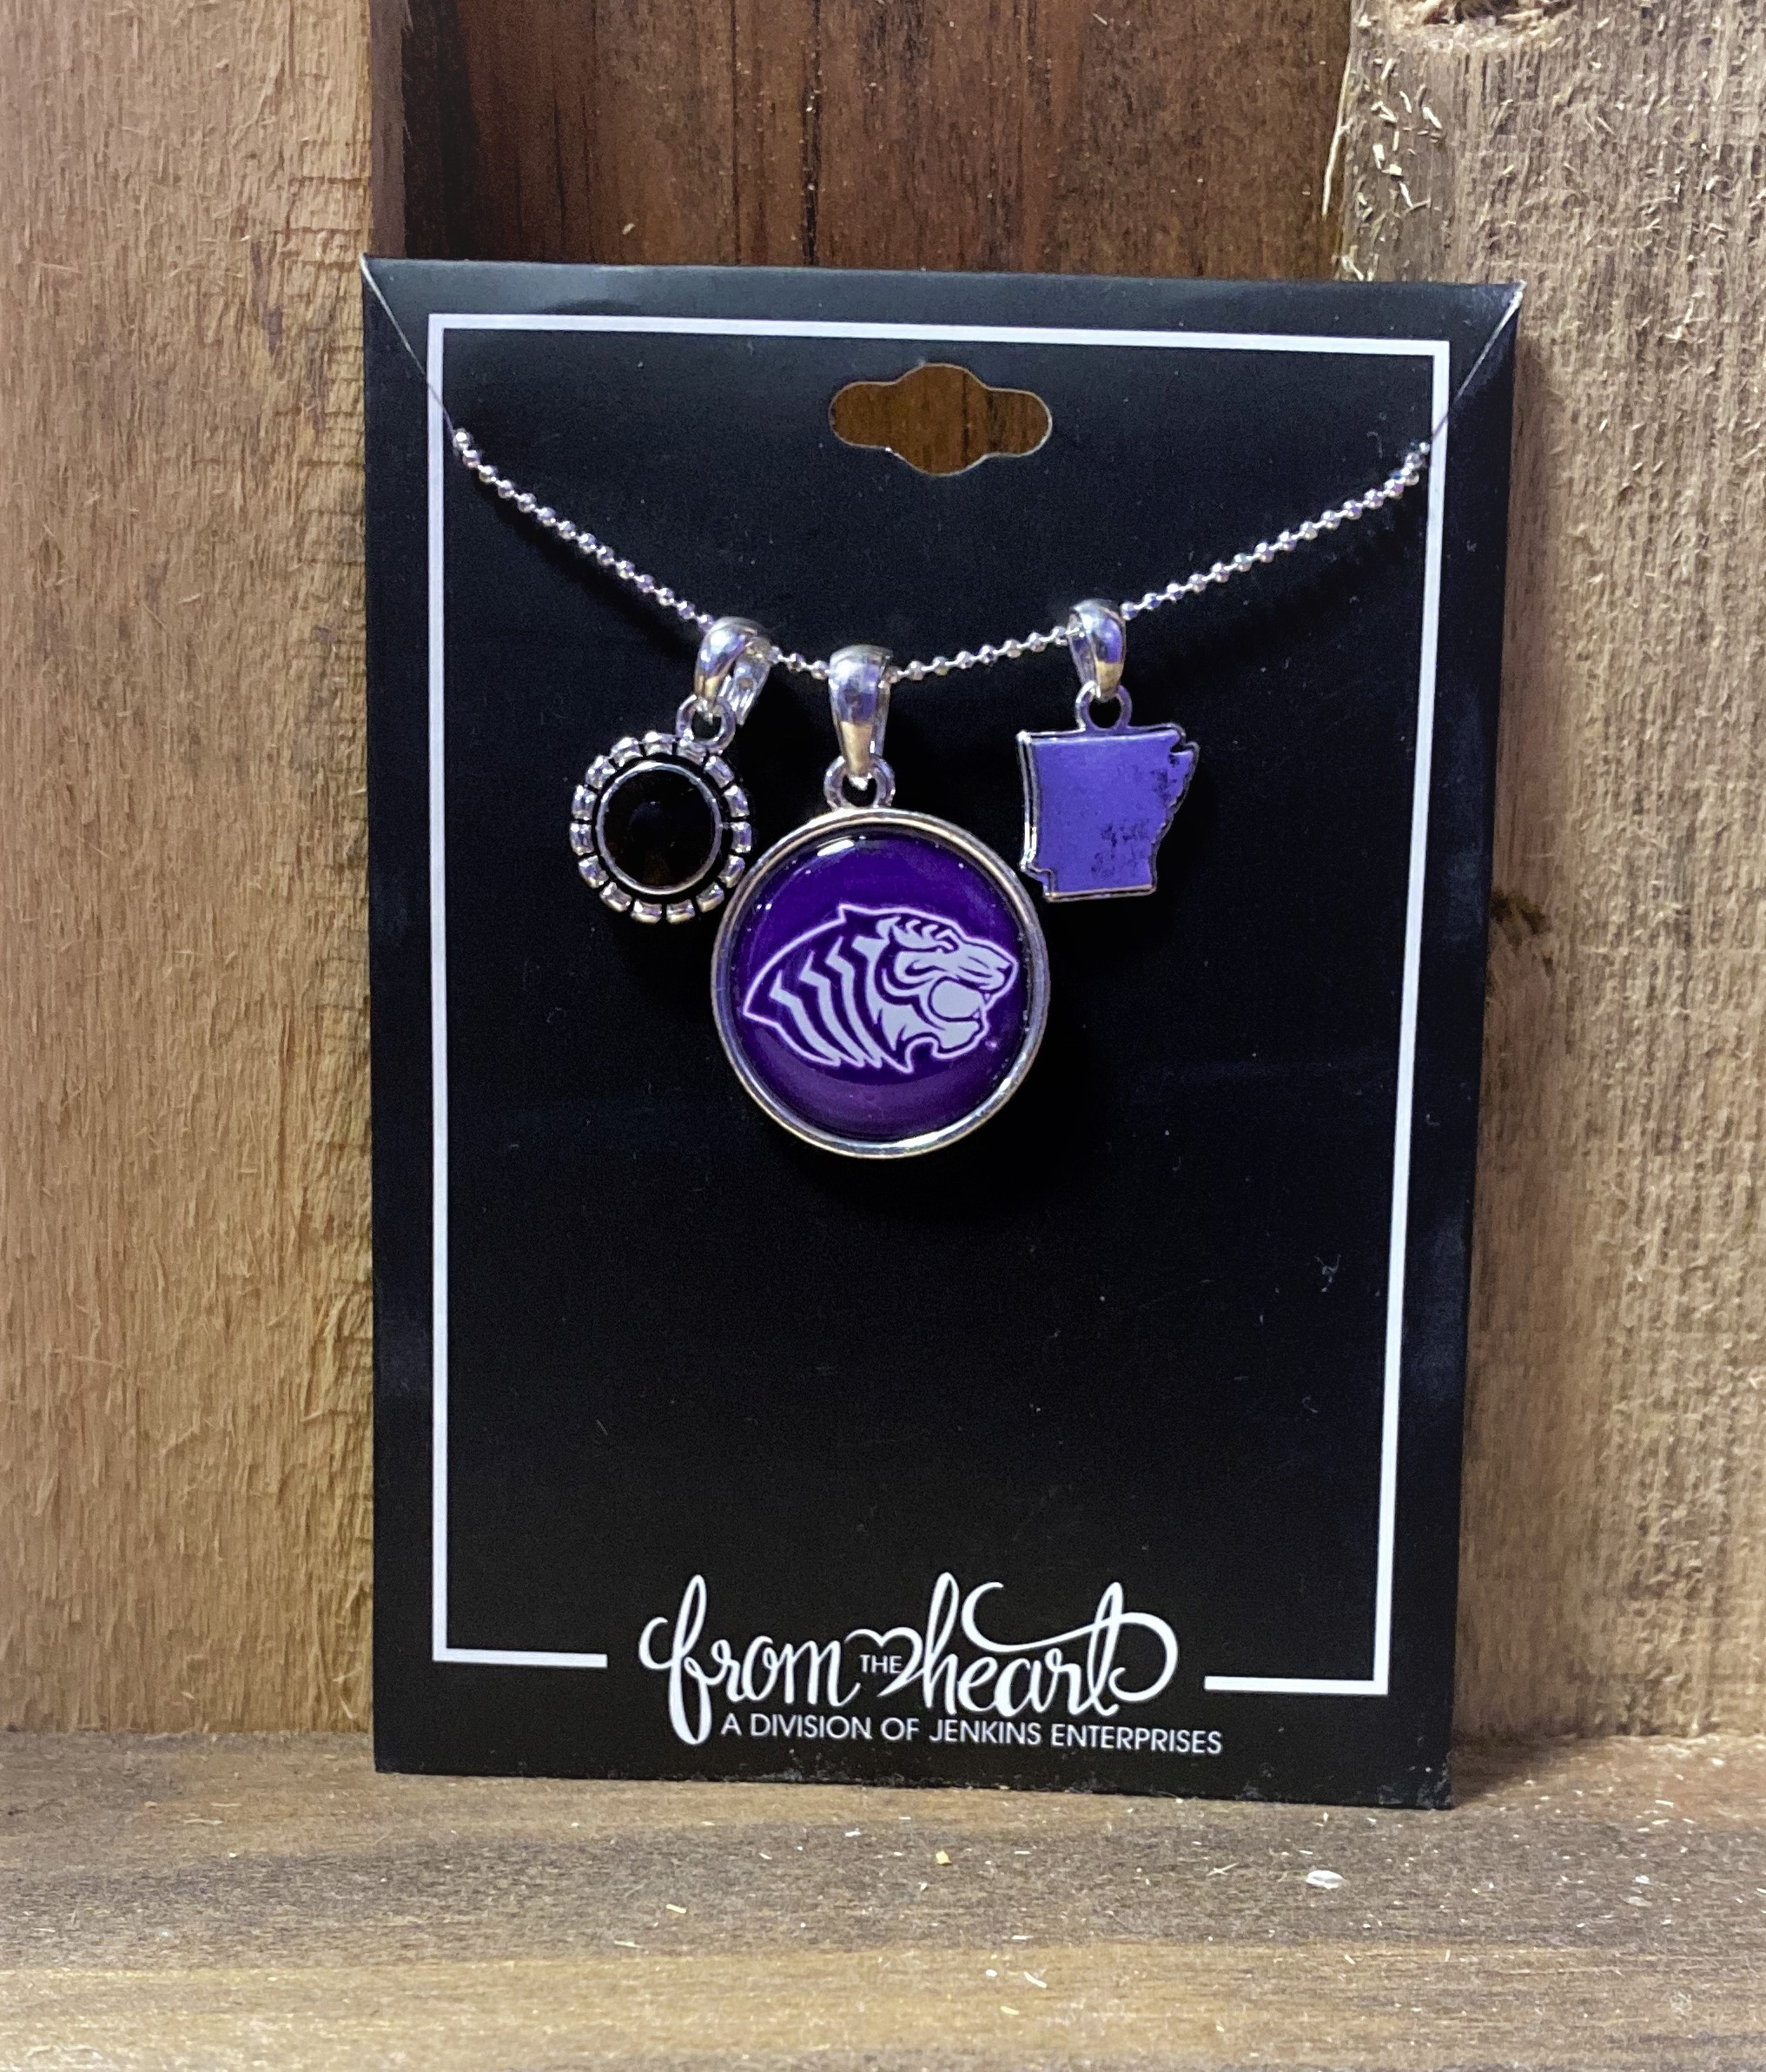 OUACHITA 'HOME SWEET SCHOOL' NECKLACE